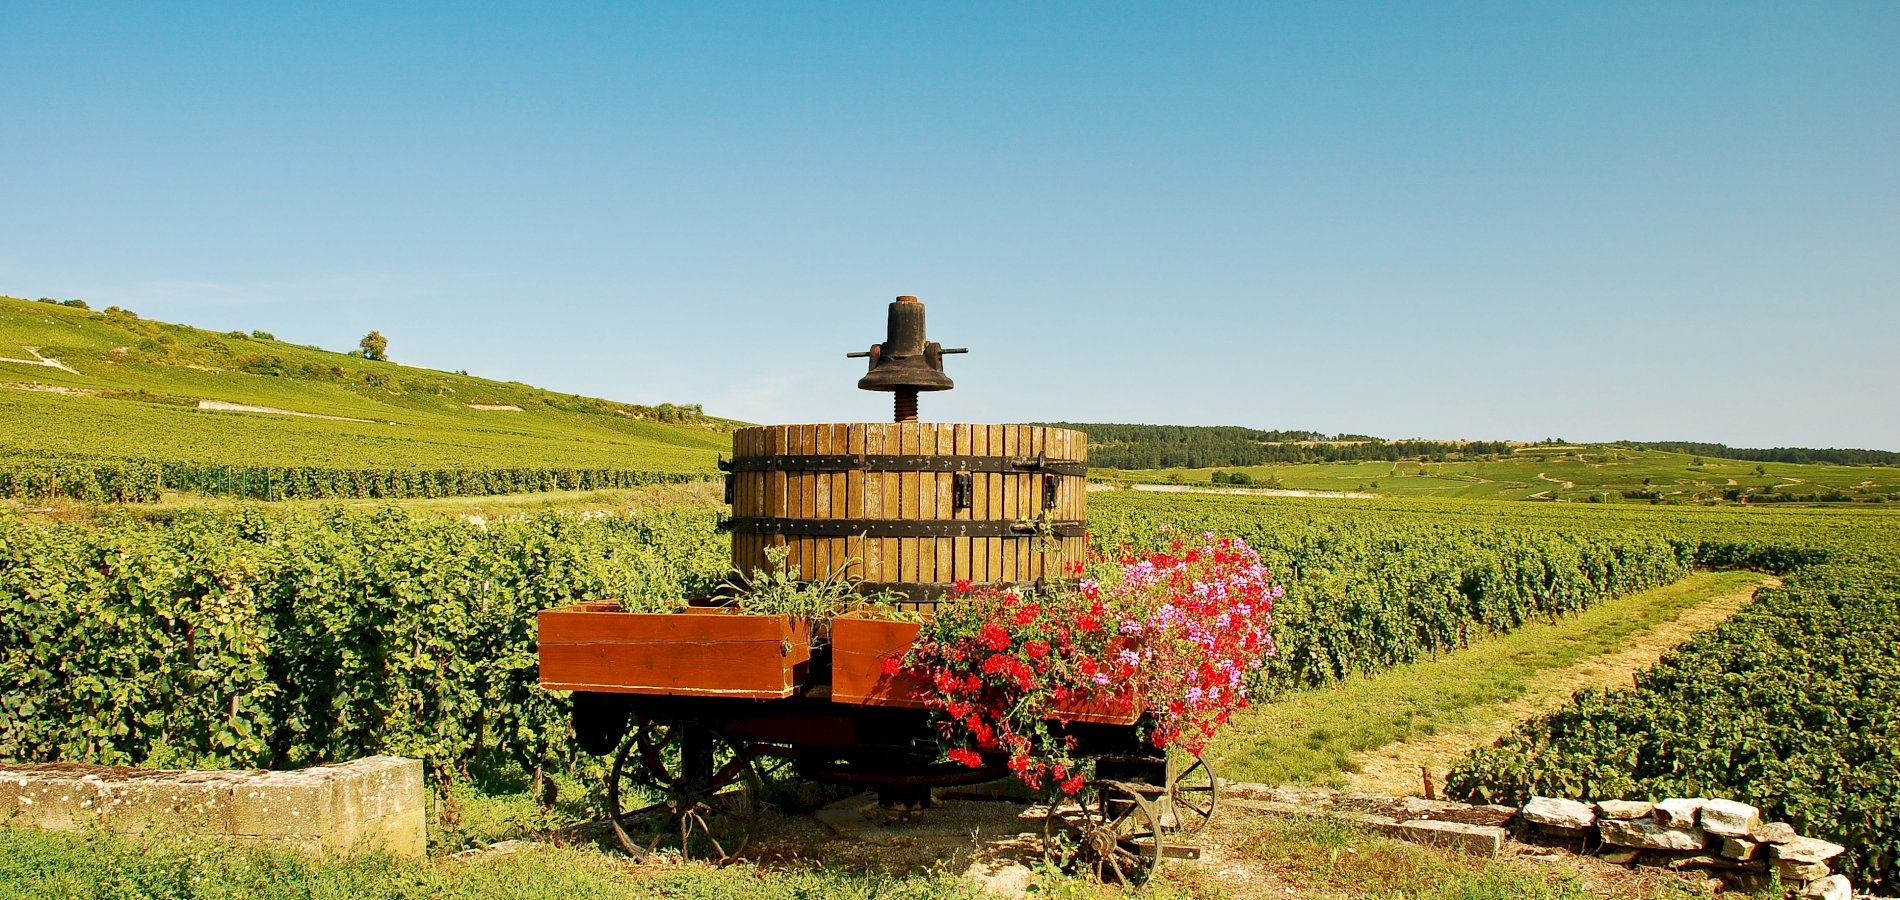 Ophorus Tours - 4 Days Burgundy Wine Tour Private Travel Package - 5* Hotel Option